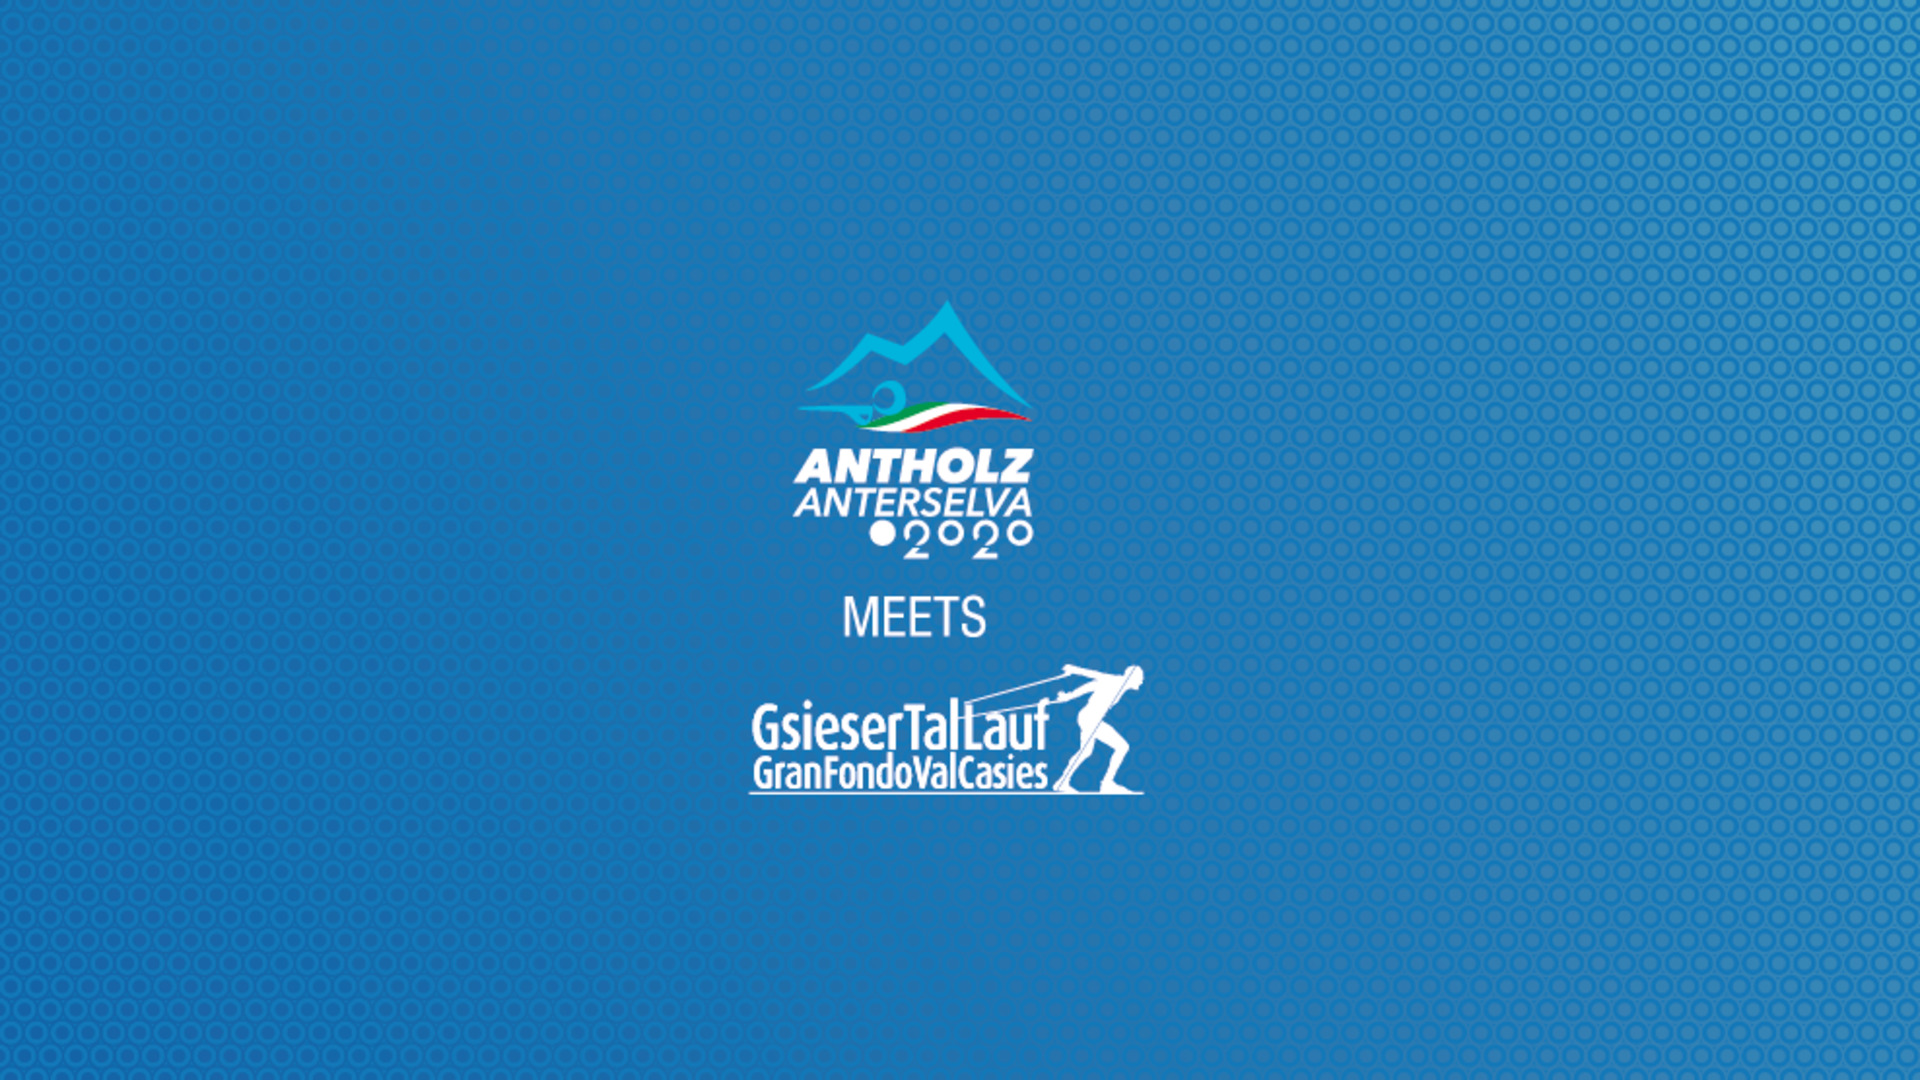 07.06.2019 - BIATHLON ANTHOLZ 2020 meets GSIESERTAL LAUF